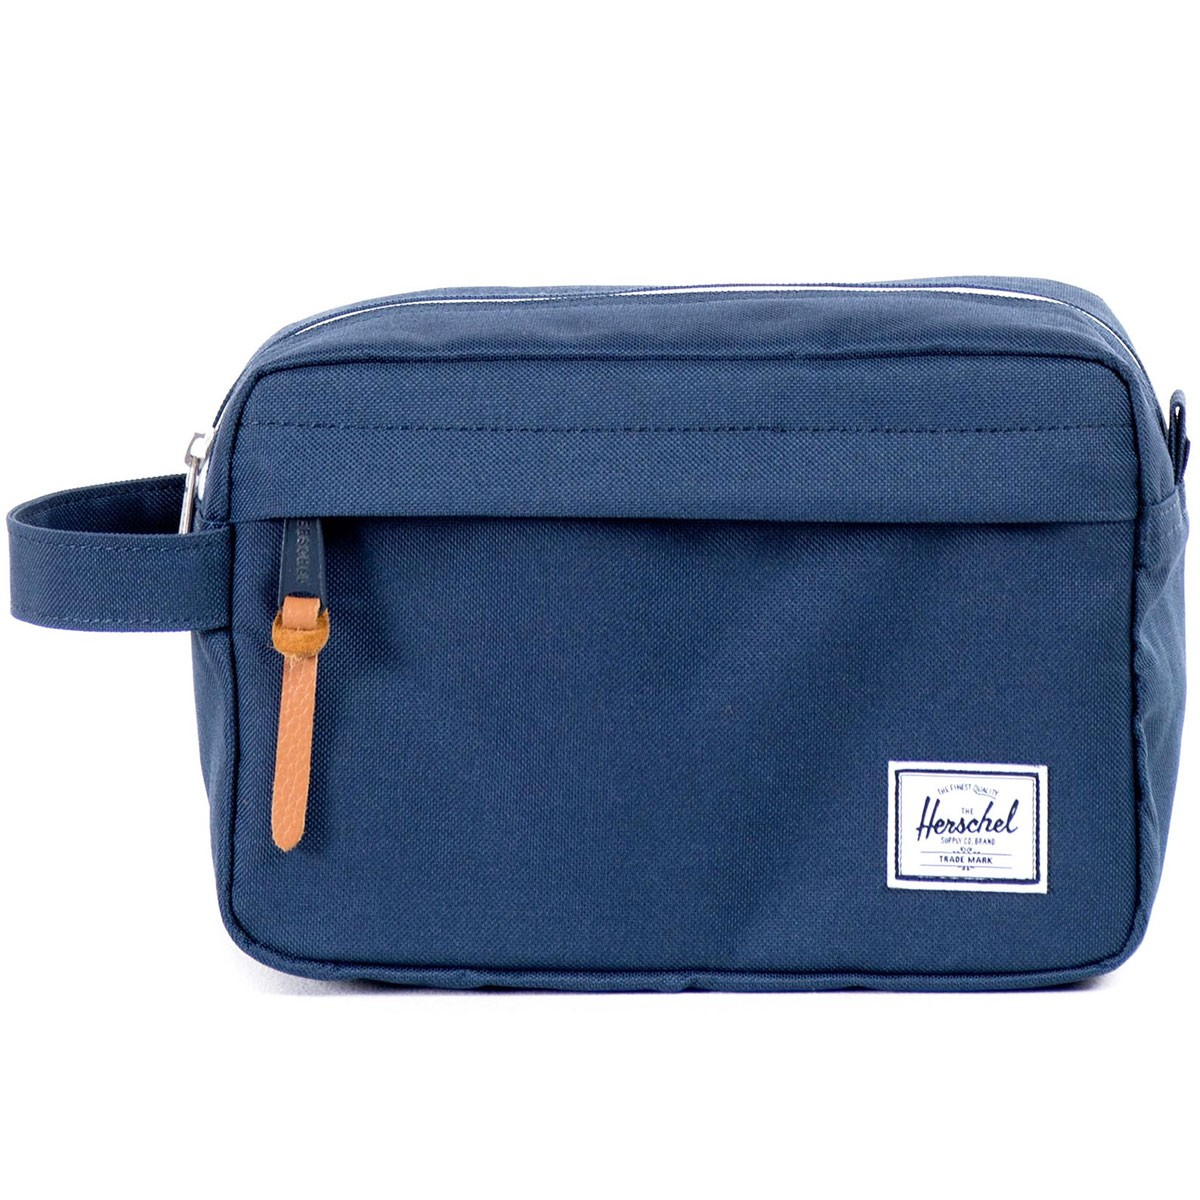 Herschel Chapter Bag - Navy